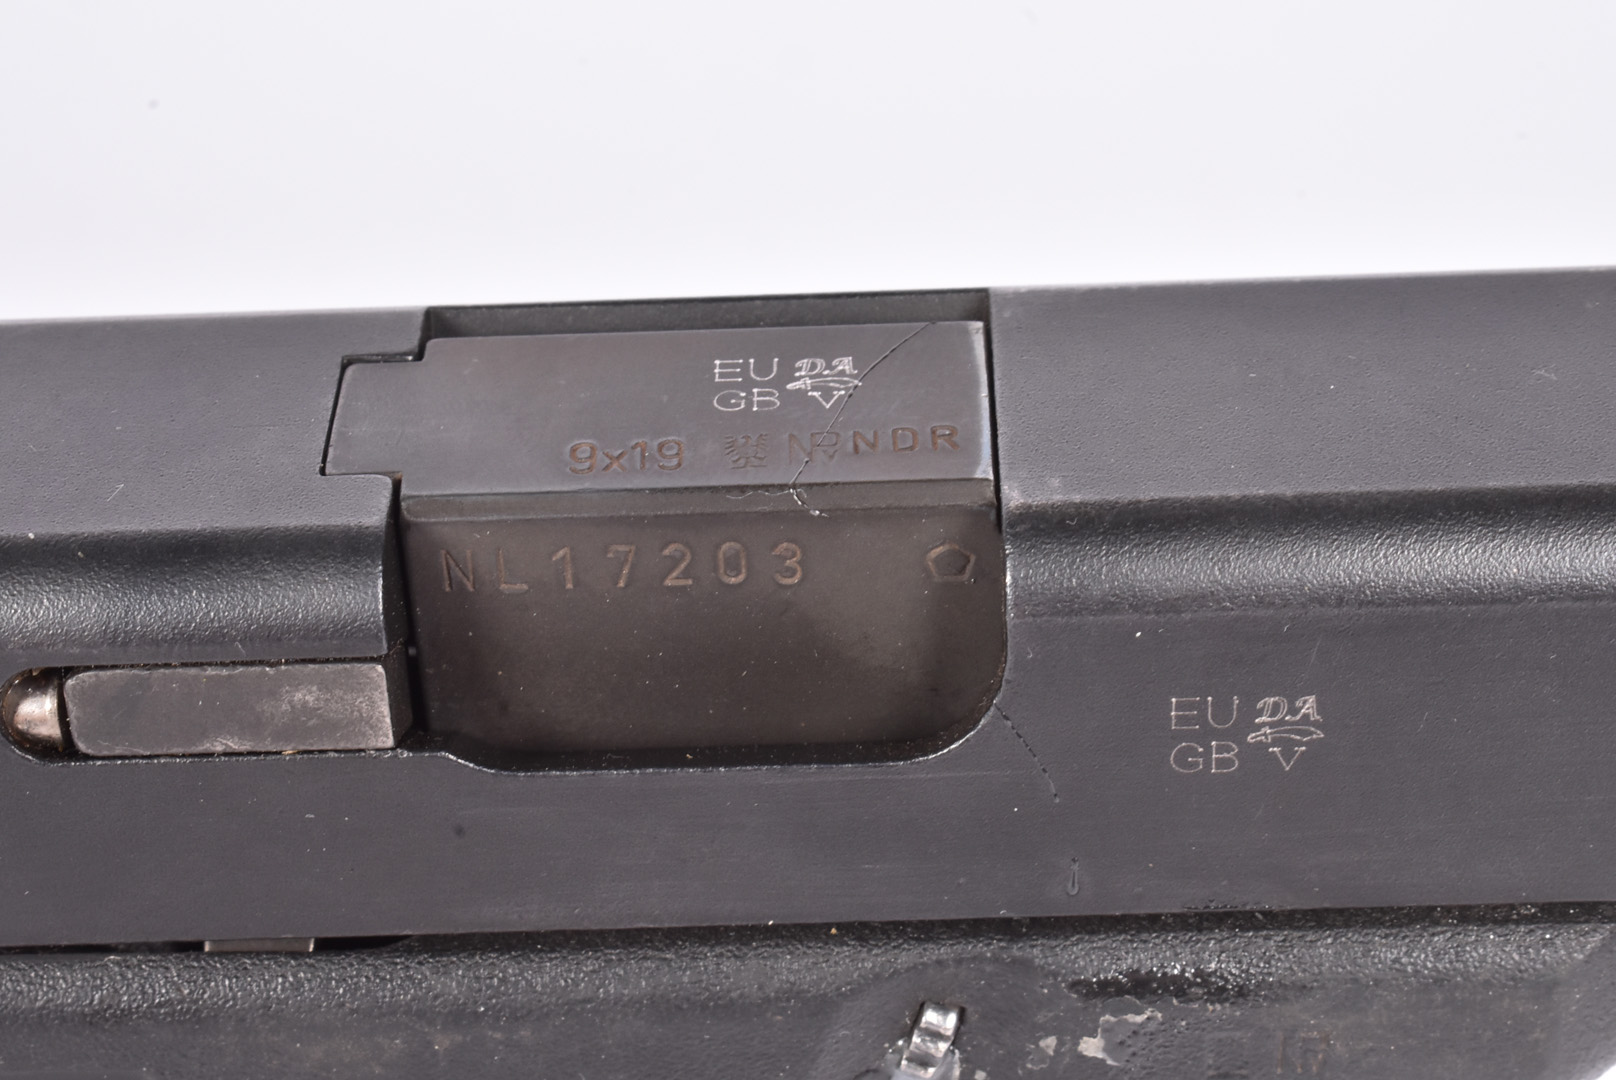 A Deactivated Glock 17 9mm Second Generation pistol, serial NL17203, deactivated to the latest EU - Image 4 of 6